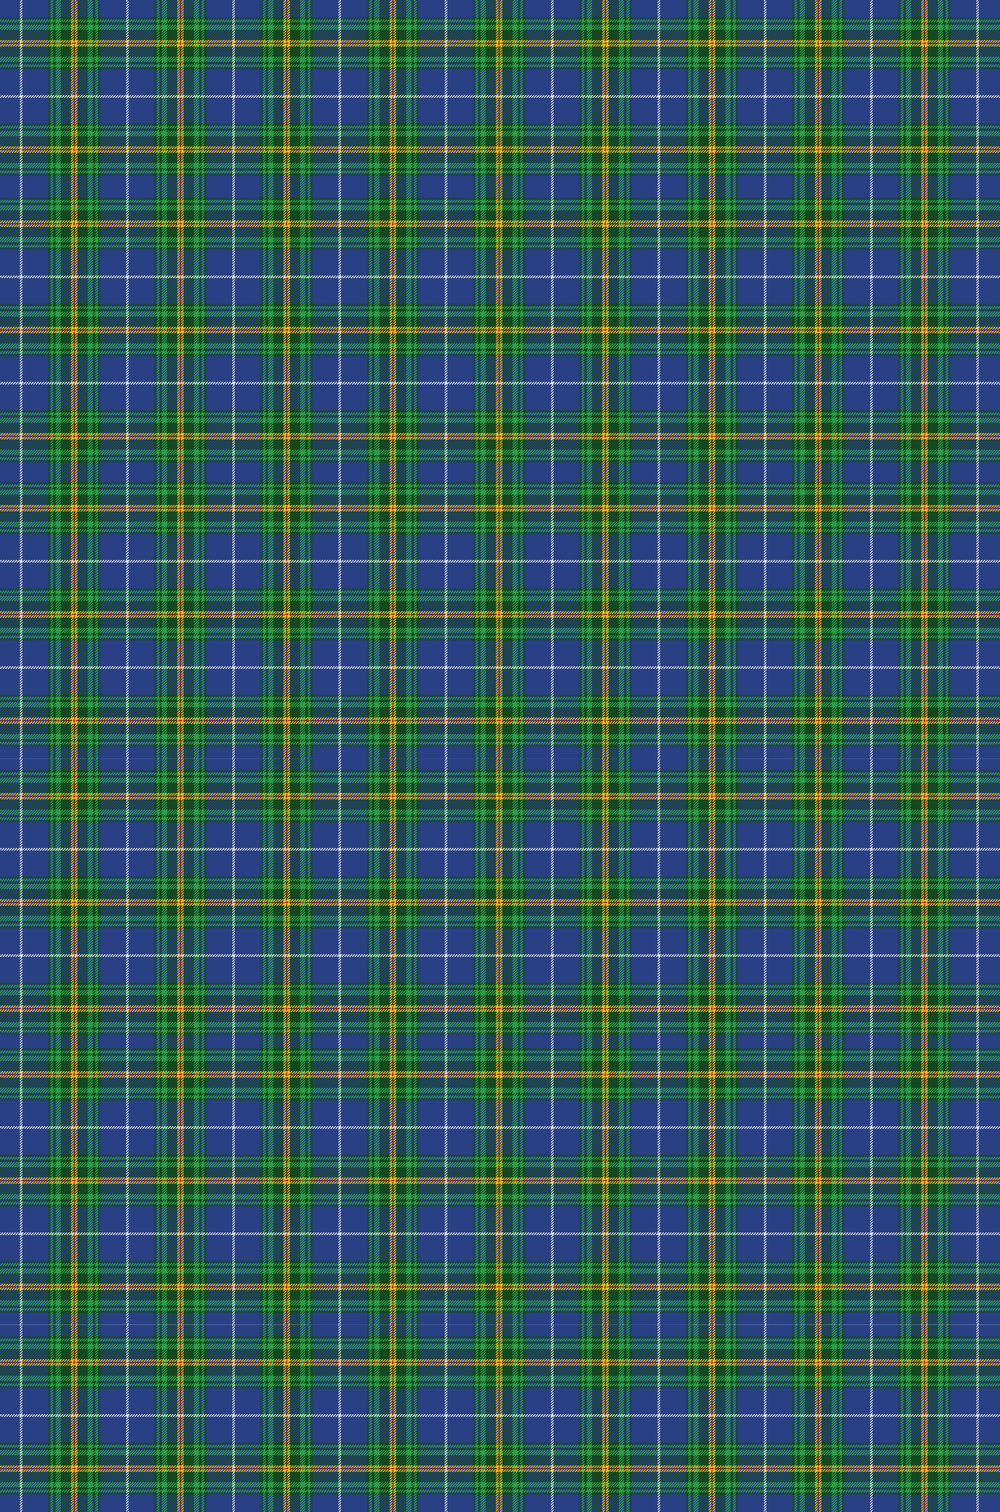 NS Tartan - iphone 6 and 6S, 7, 8.jpg